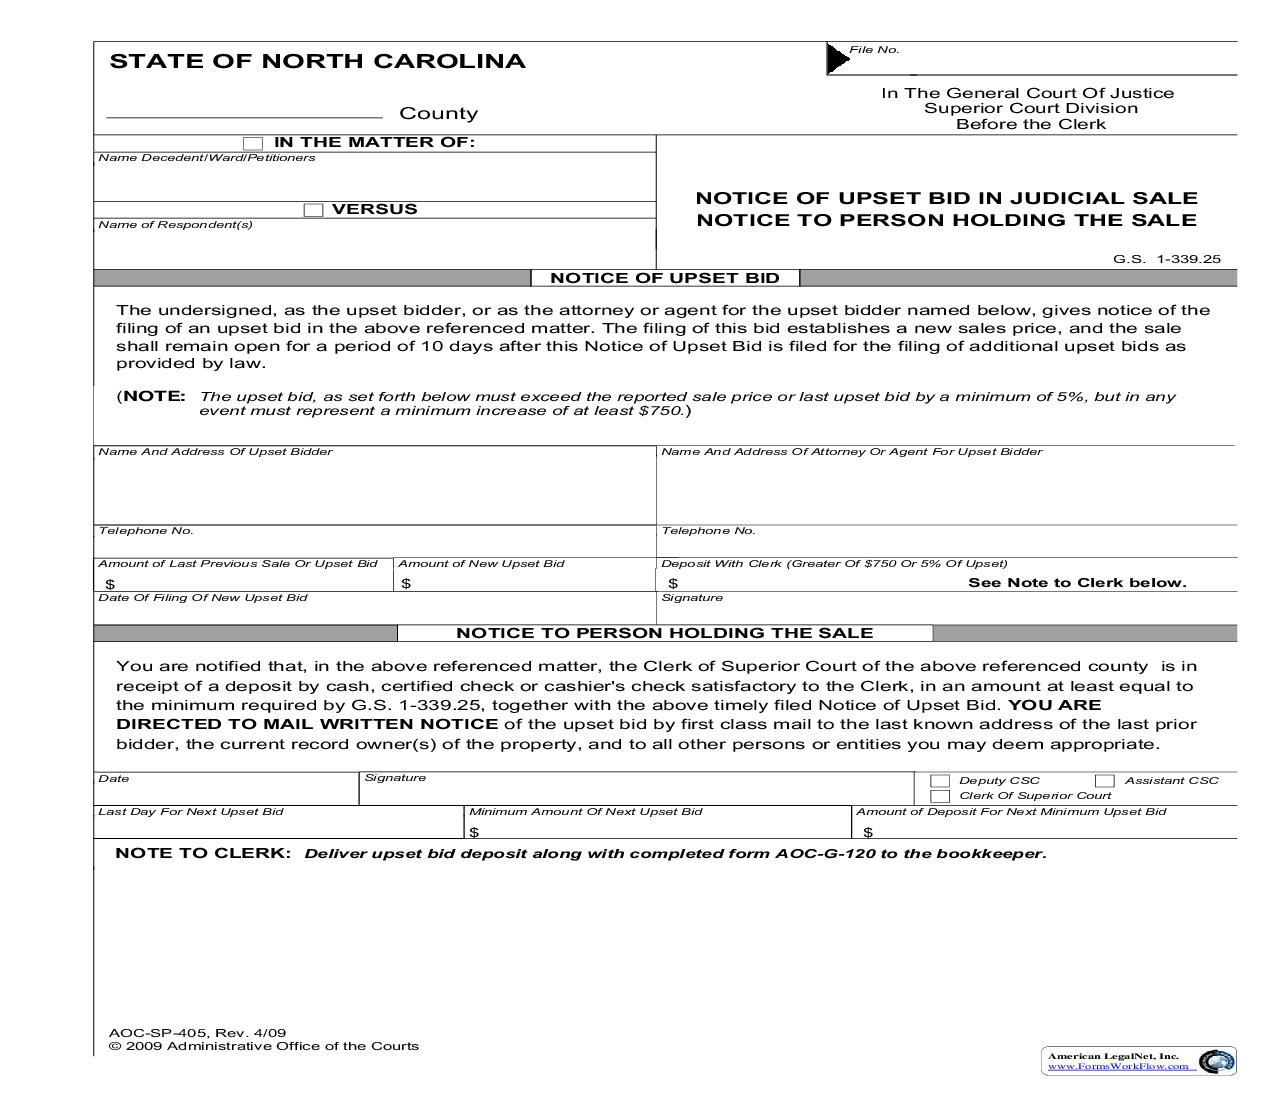 Notice Of Upset Bid On Judicial Sale Notice To Person Holding The Sale {SP-405} | Pdf Fpdf Doc Docx | North Carolina